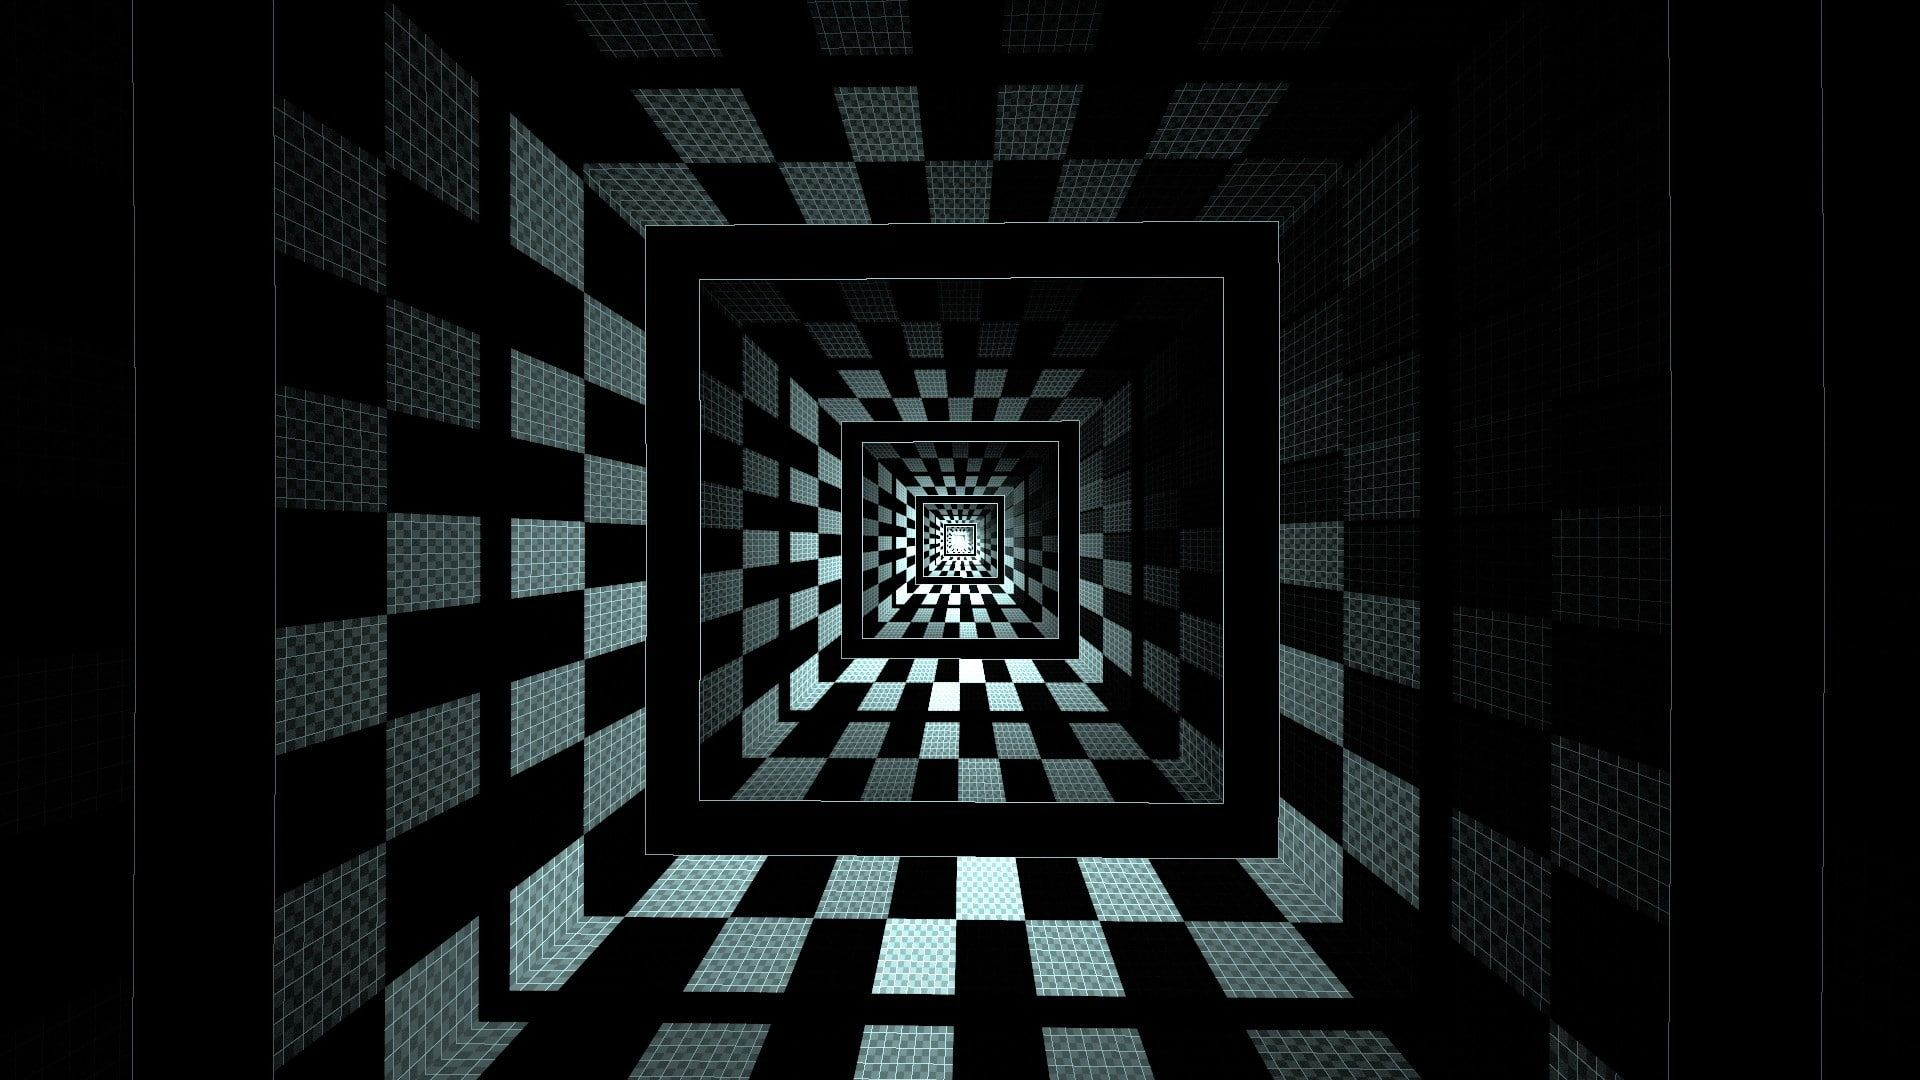 Optical Illusion Geometry Abstract Square 1080p Wallpaper Hdwallpaper Desktop Optical Illusion Wallpaper Optical Illusions Checkered Wallpaper